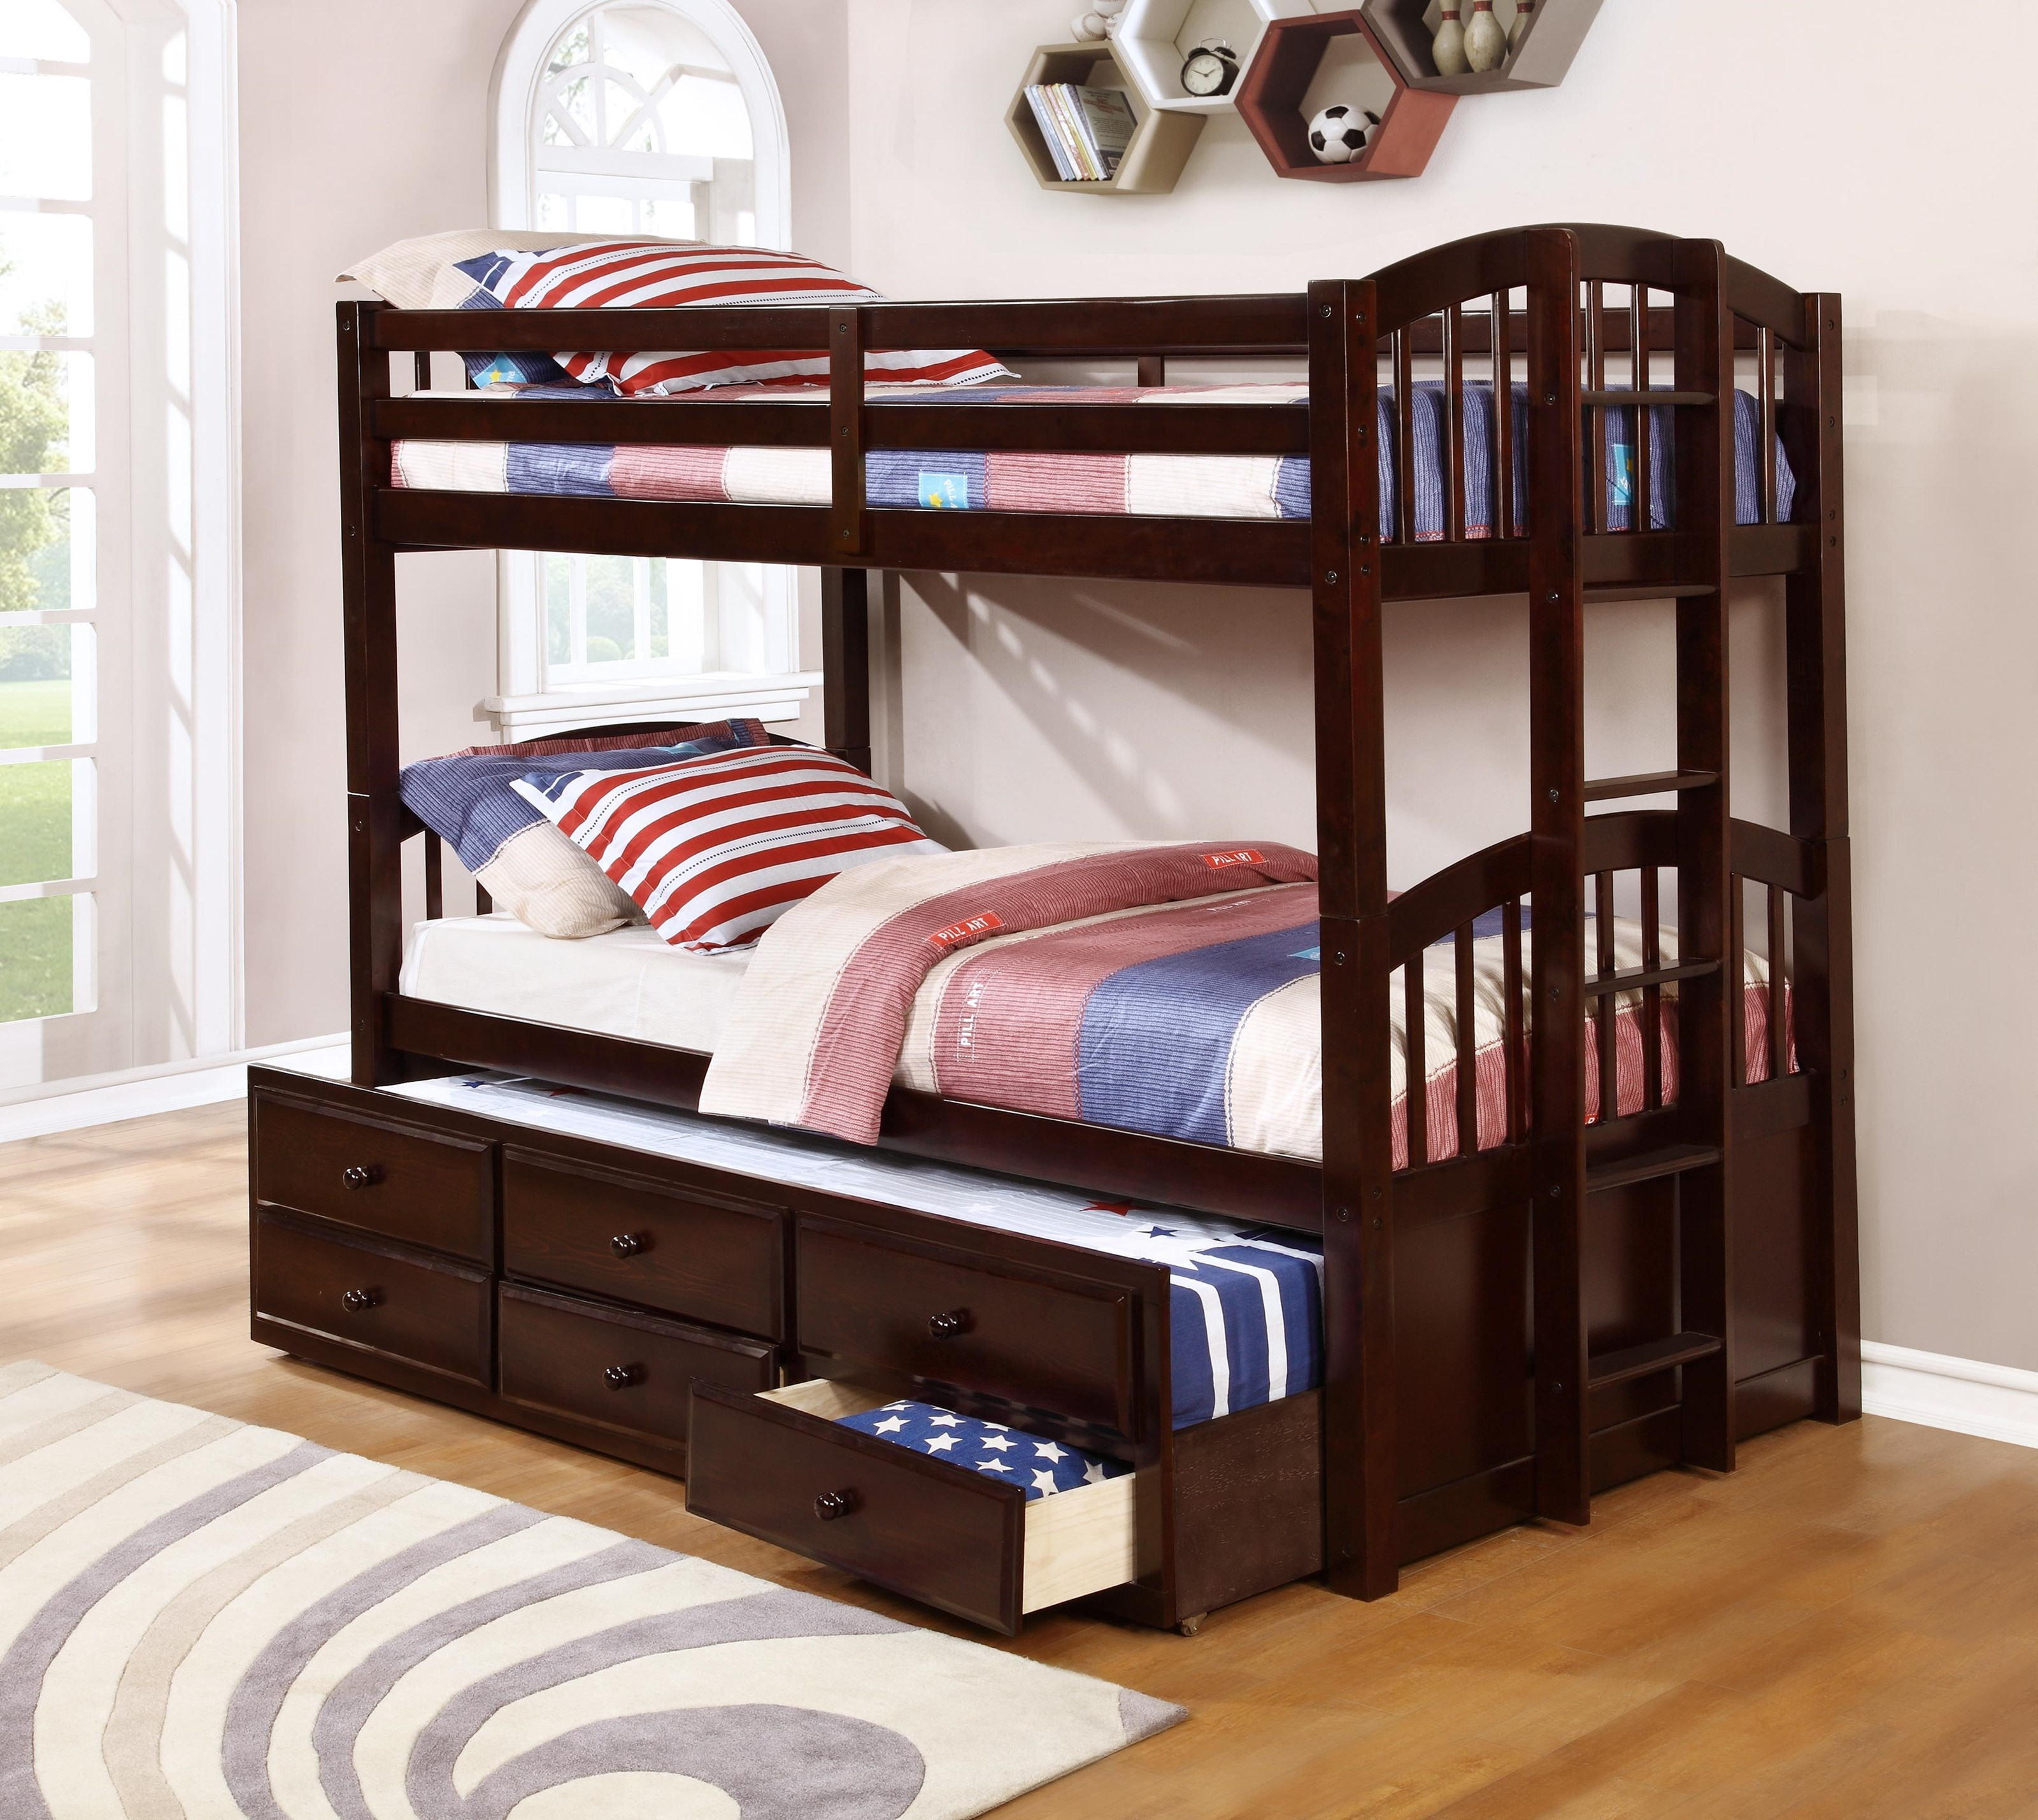 BB8146 Bunkbed by Household Furniture Direct at Household Furniture